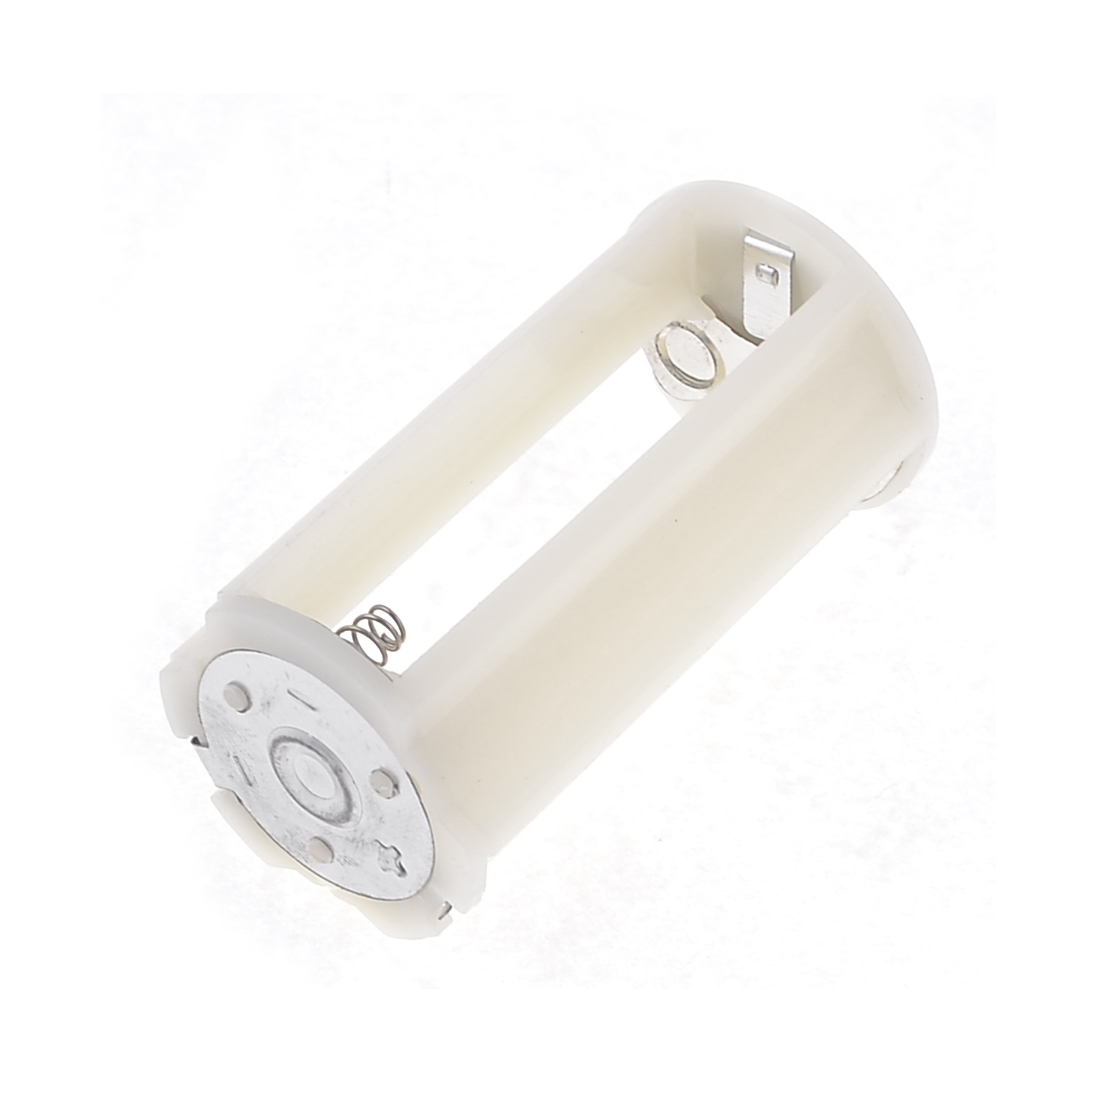 grey white Cylinder Battery Holder Adapter for 3x1.5V AA Batteries